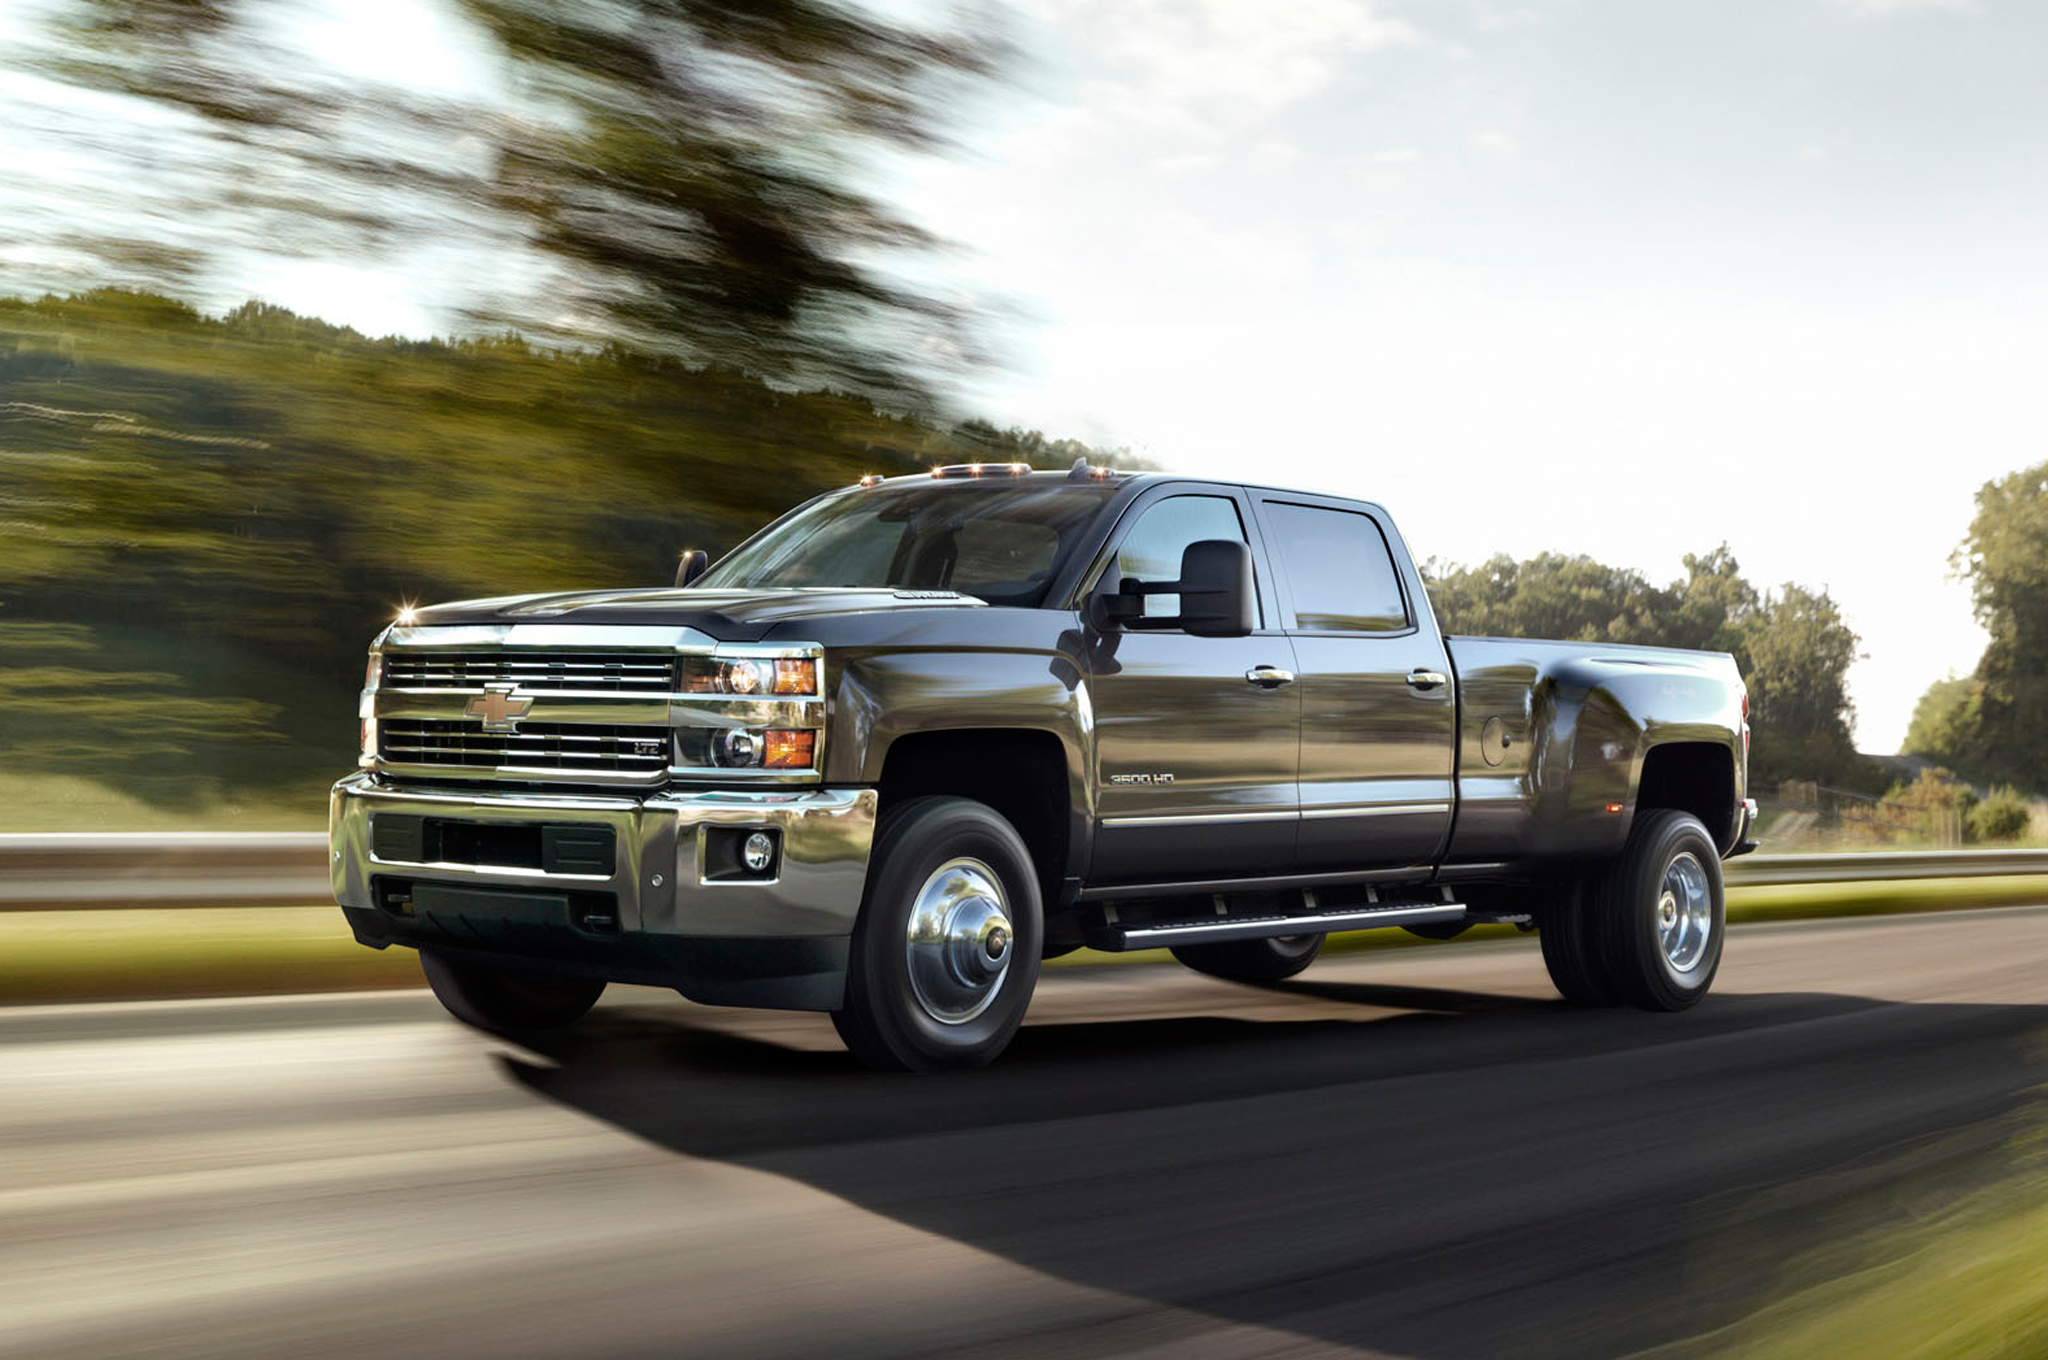 2015 chevrolet silverado 2500hd pictures gallery 6 images